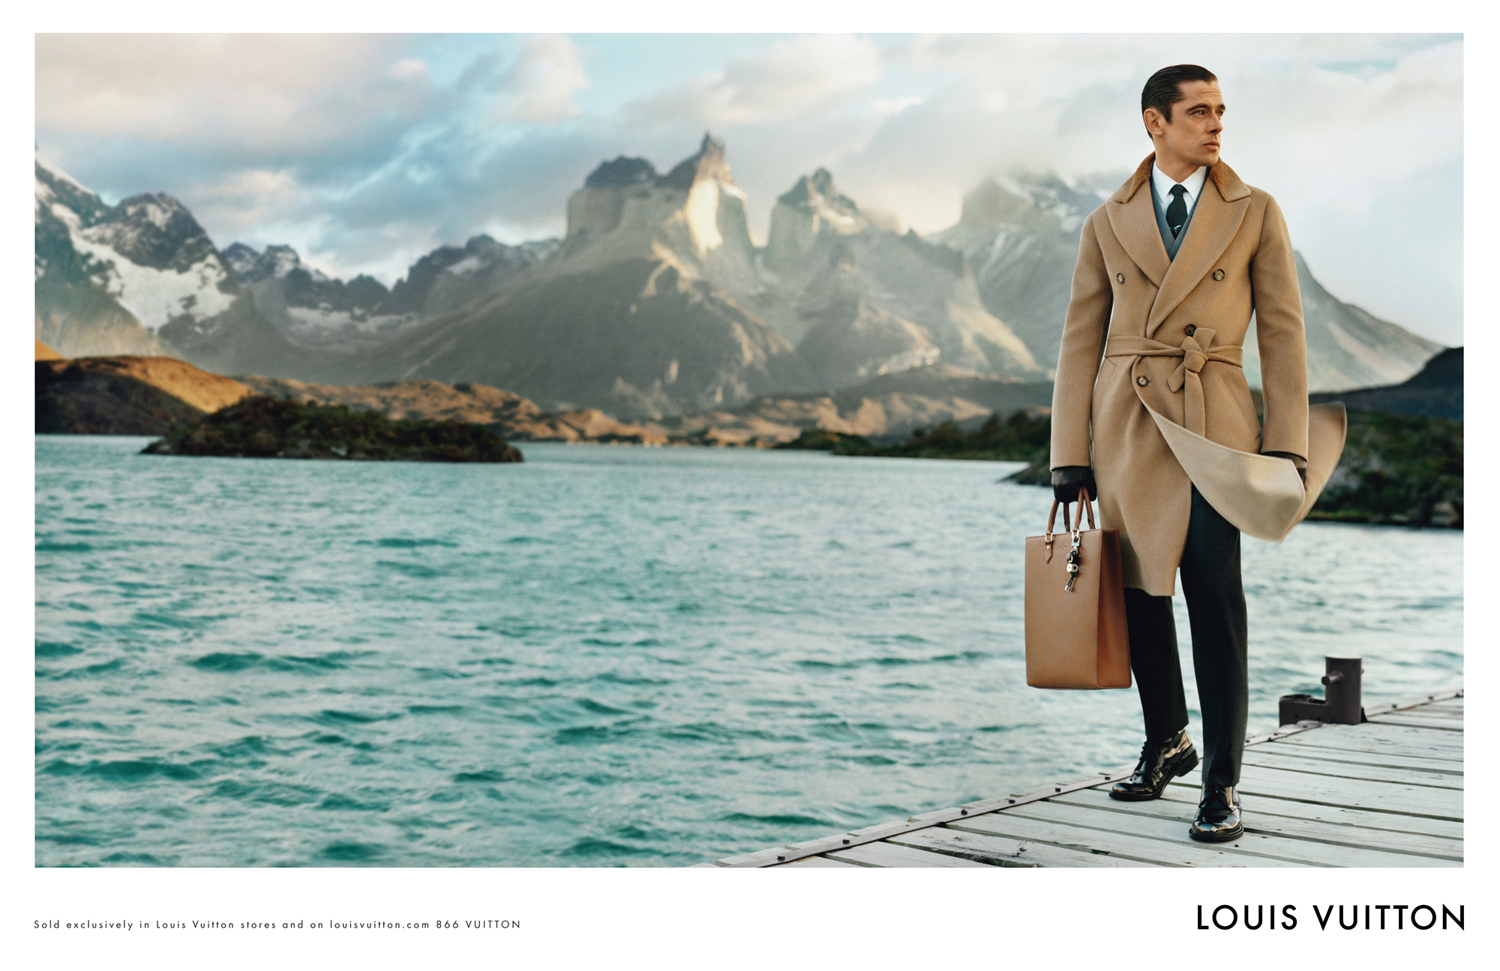 Magnus-Naddermier-Louis-Vuitton-Homme-AW12-DP-Photo-Alasdair-McLellan-03.jpg